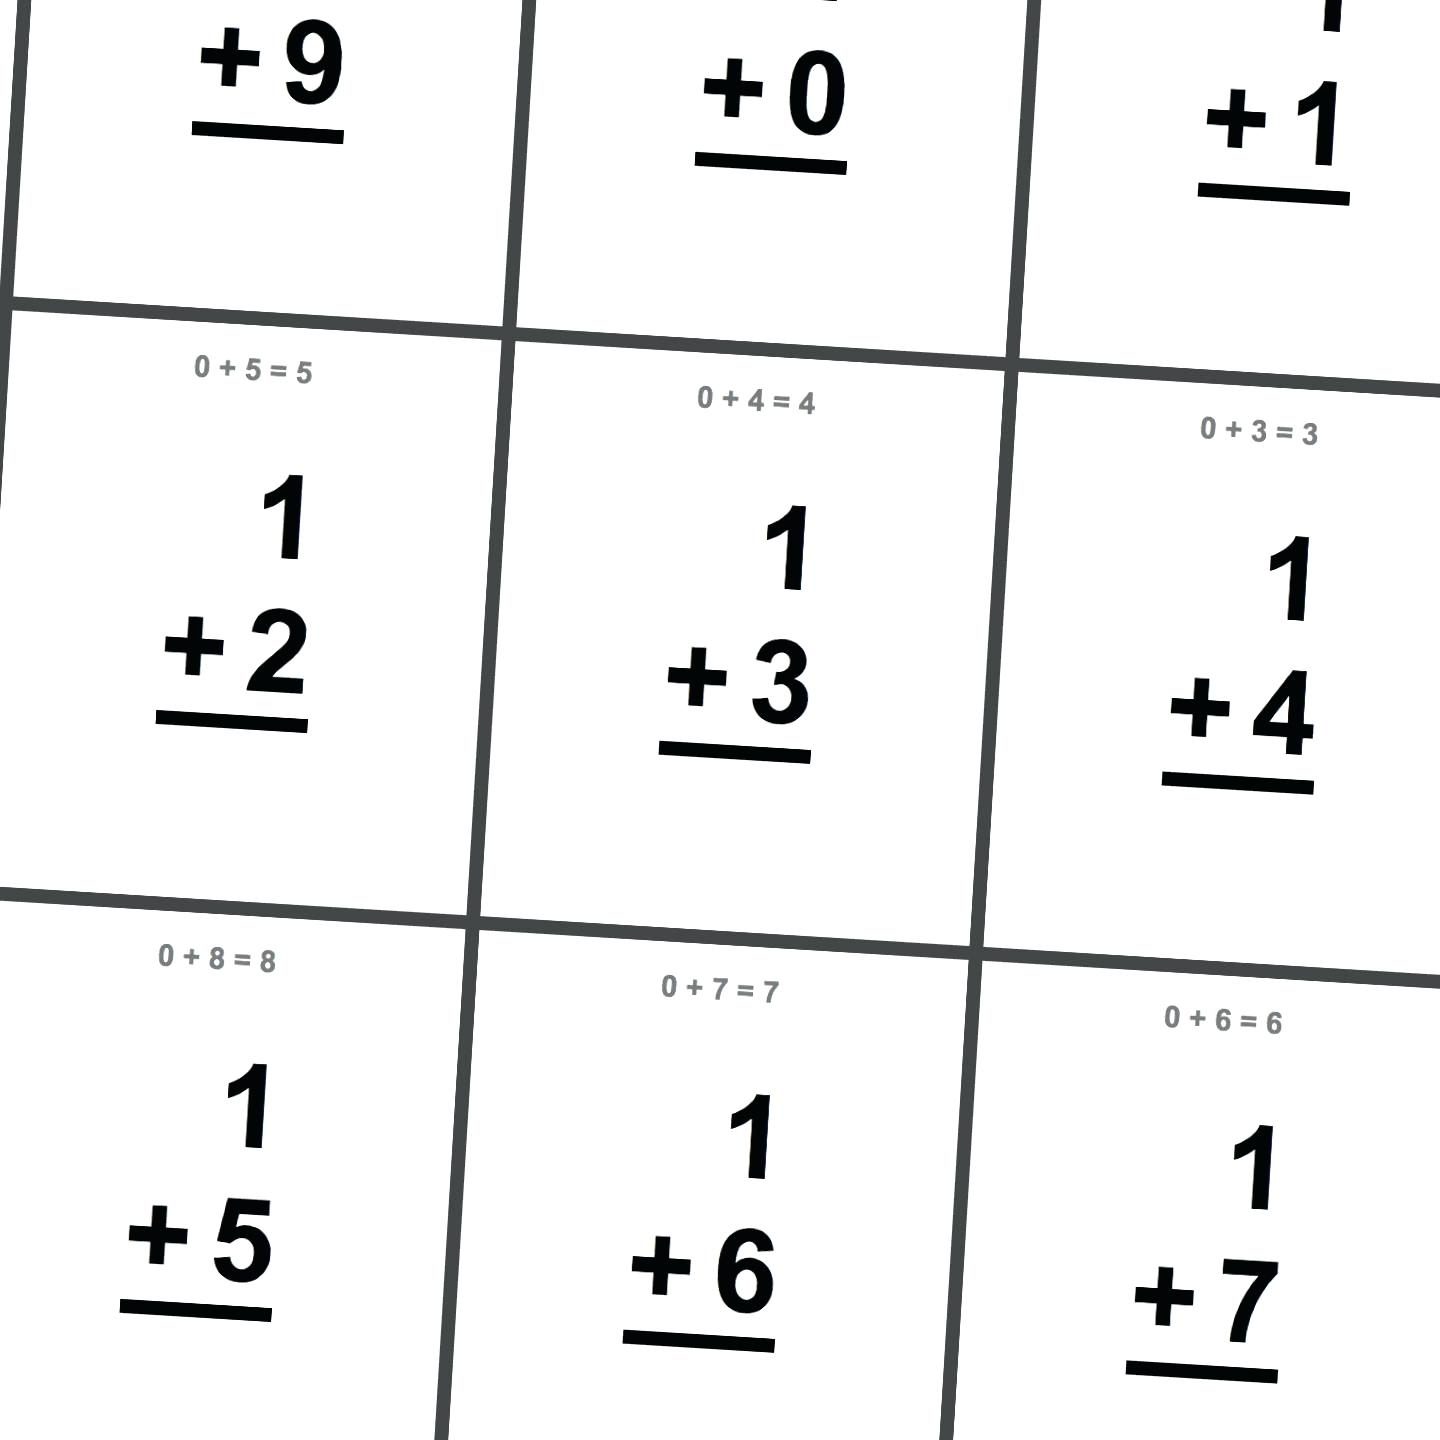 Printable Multiplication Flash Cards Double Sided That Are regarding Printable Multiplication Flash Cards 6